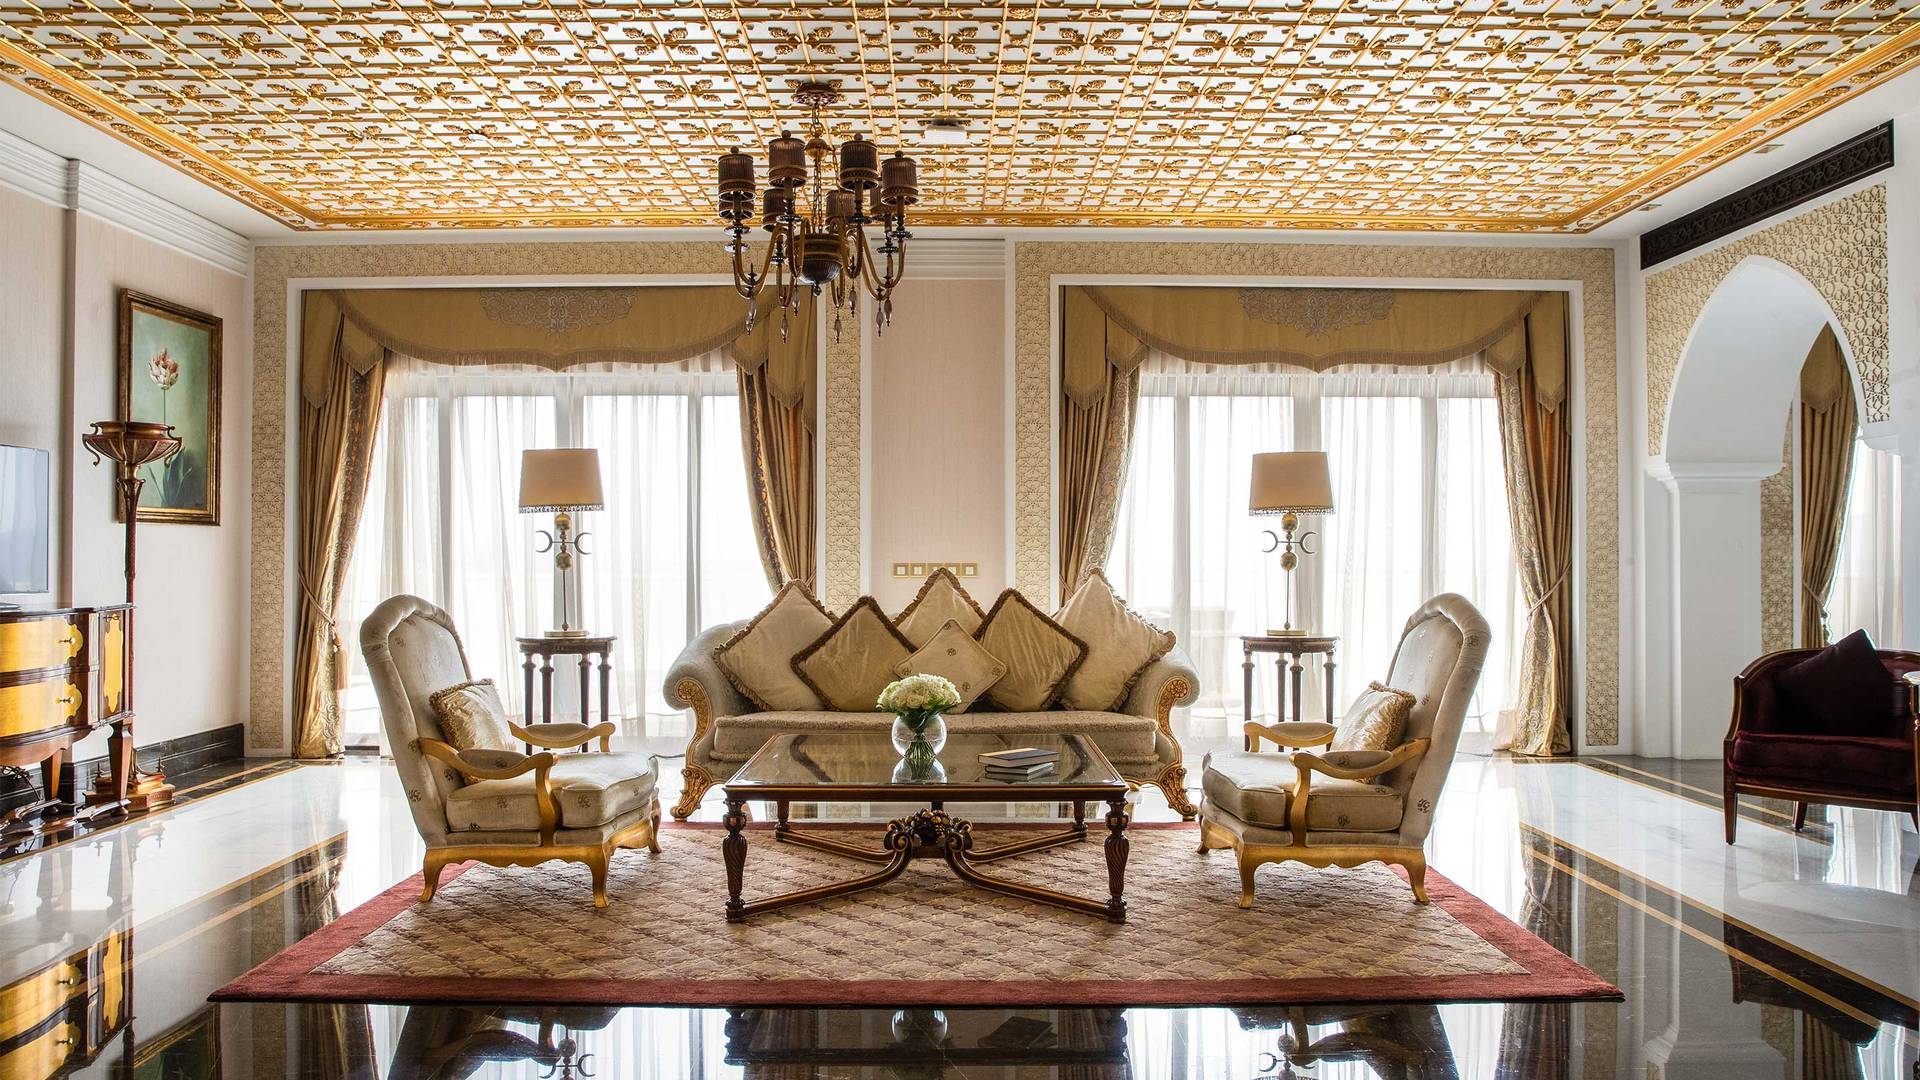 16-9_Jumeirah-Zabeel-Saray---Grand-Imperial-Suite---Living-Room-Area